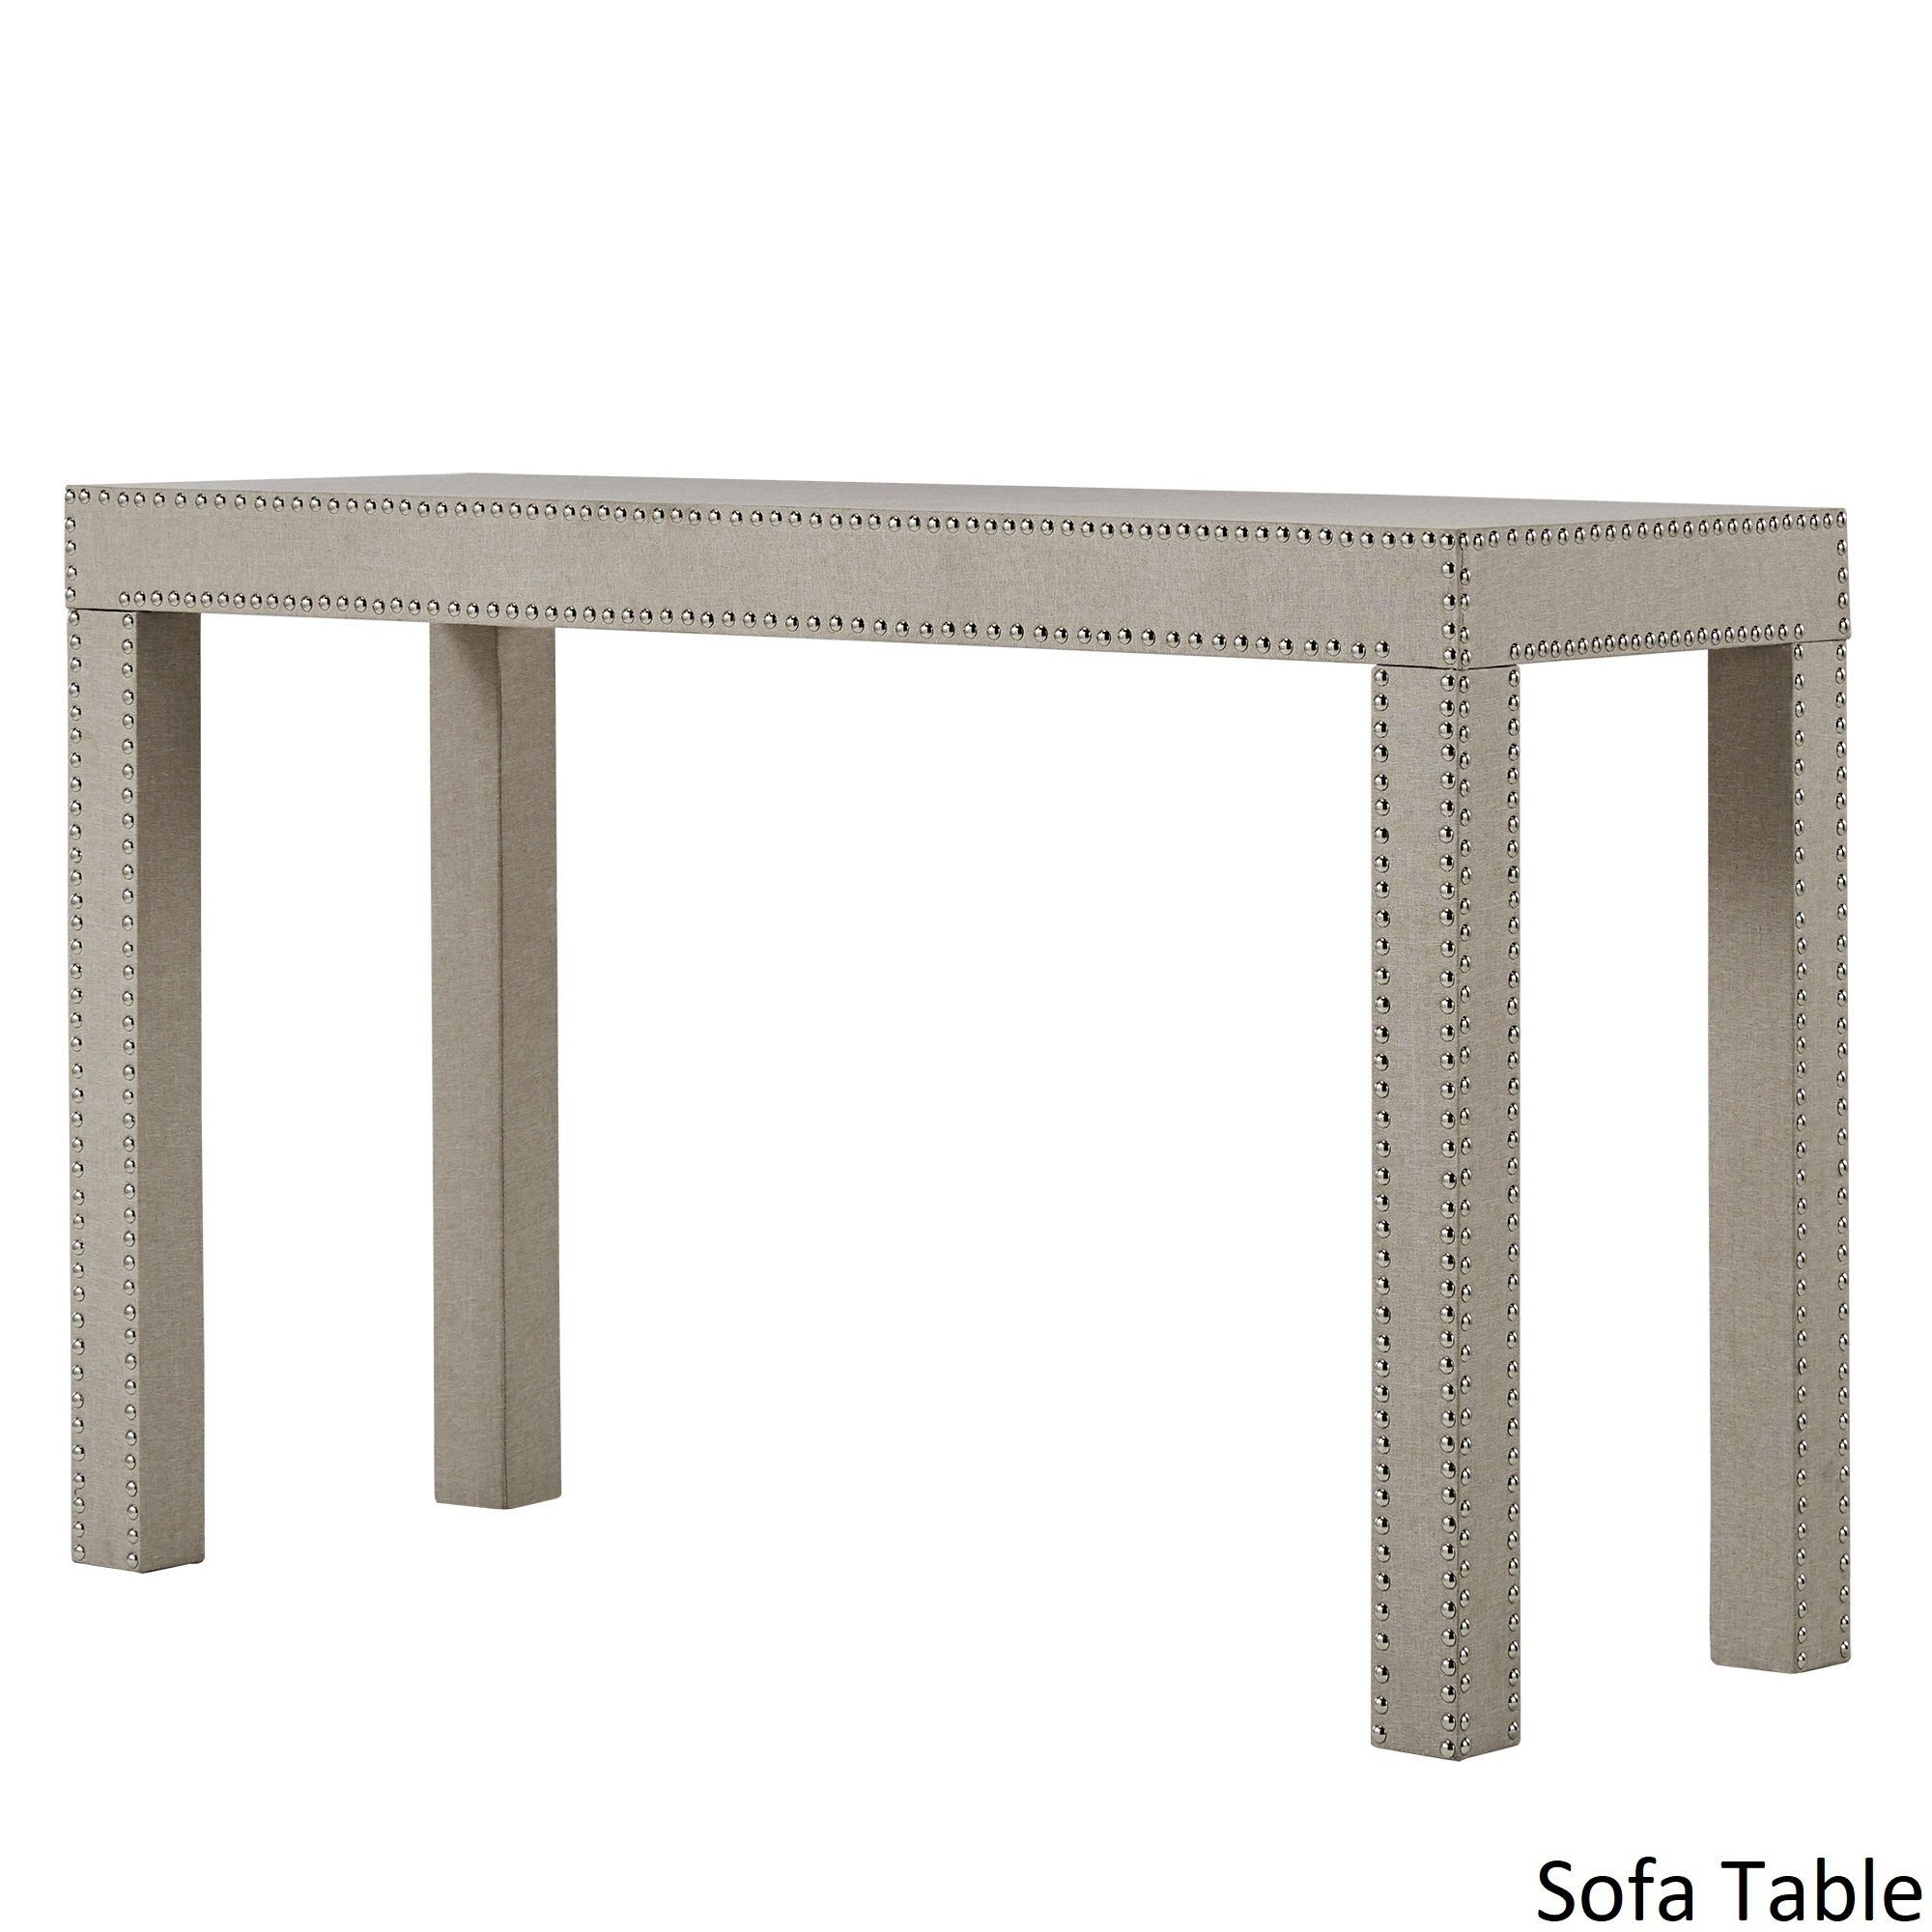 emery beige linen nailhead trim accent tables inspire bold table with nailheads free shipping today bistro set patio dining bench buffet side target makeup vanity dark blue barn